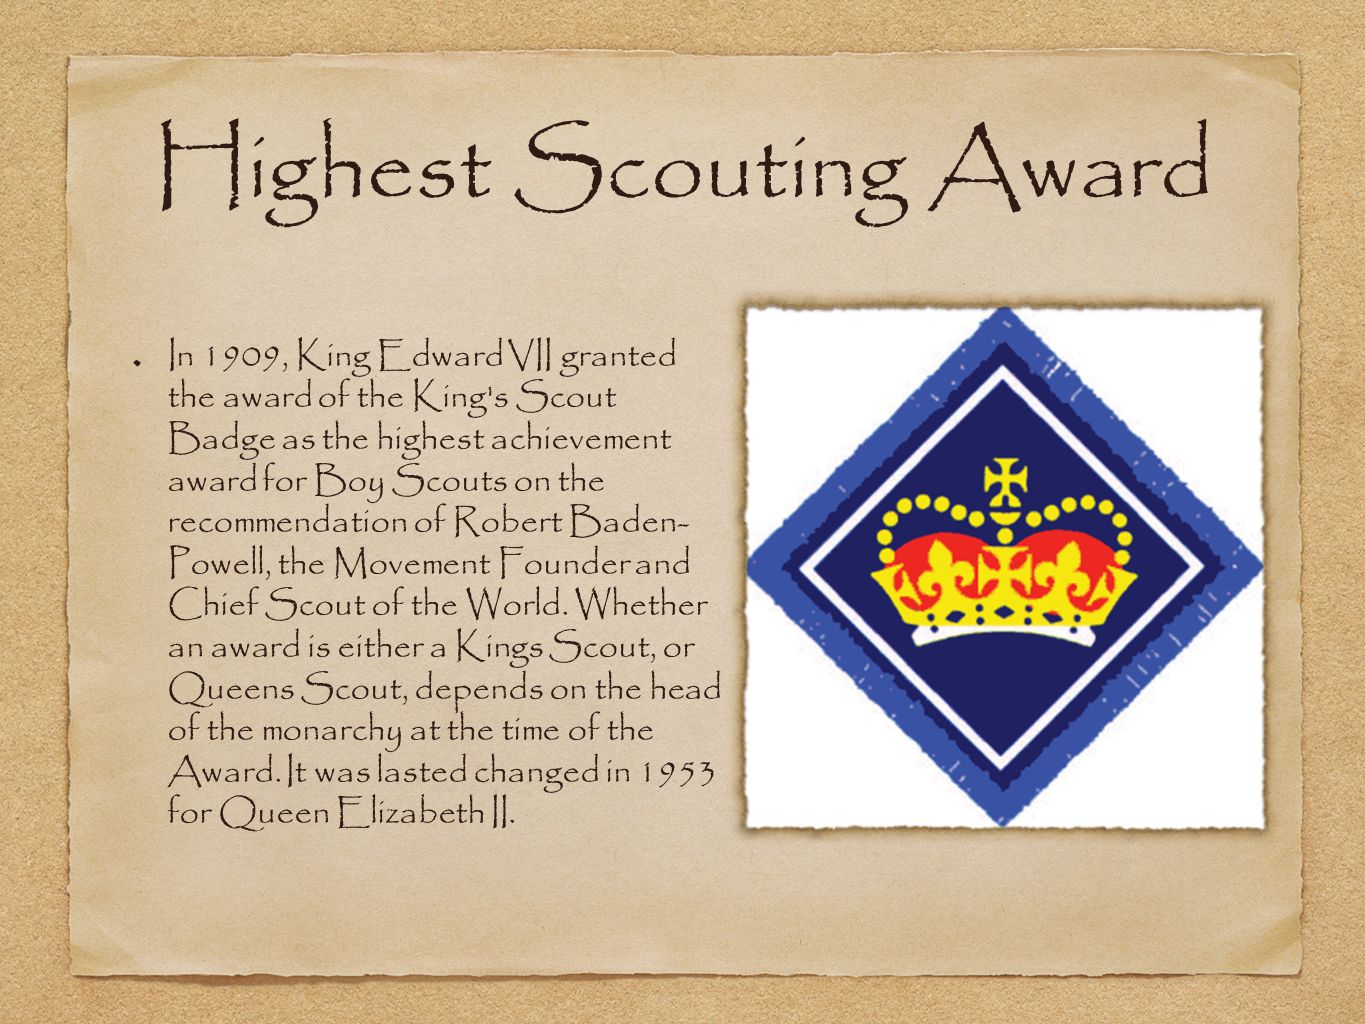 Highest Scouting Award In 1909, King Edward VII granted the award of the King s Scout Badge as the highest achievement award for Boy Scouts on the recommendation of Robert Baden- Powell, the Movement Founder and Chief Scout of the World.